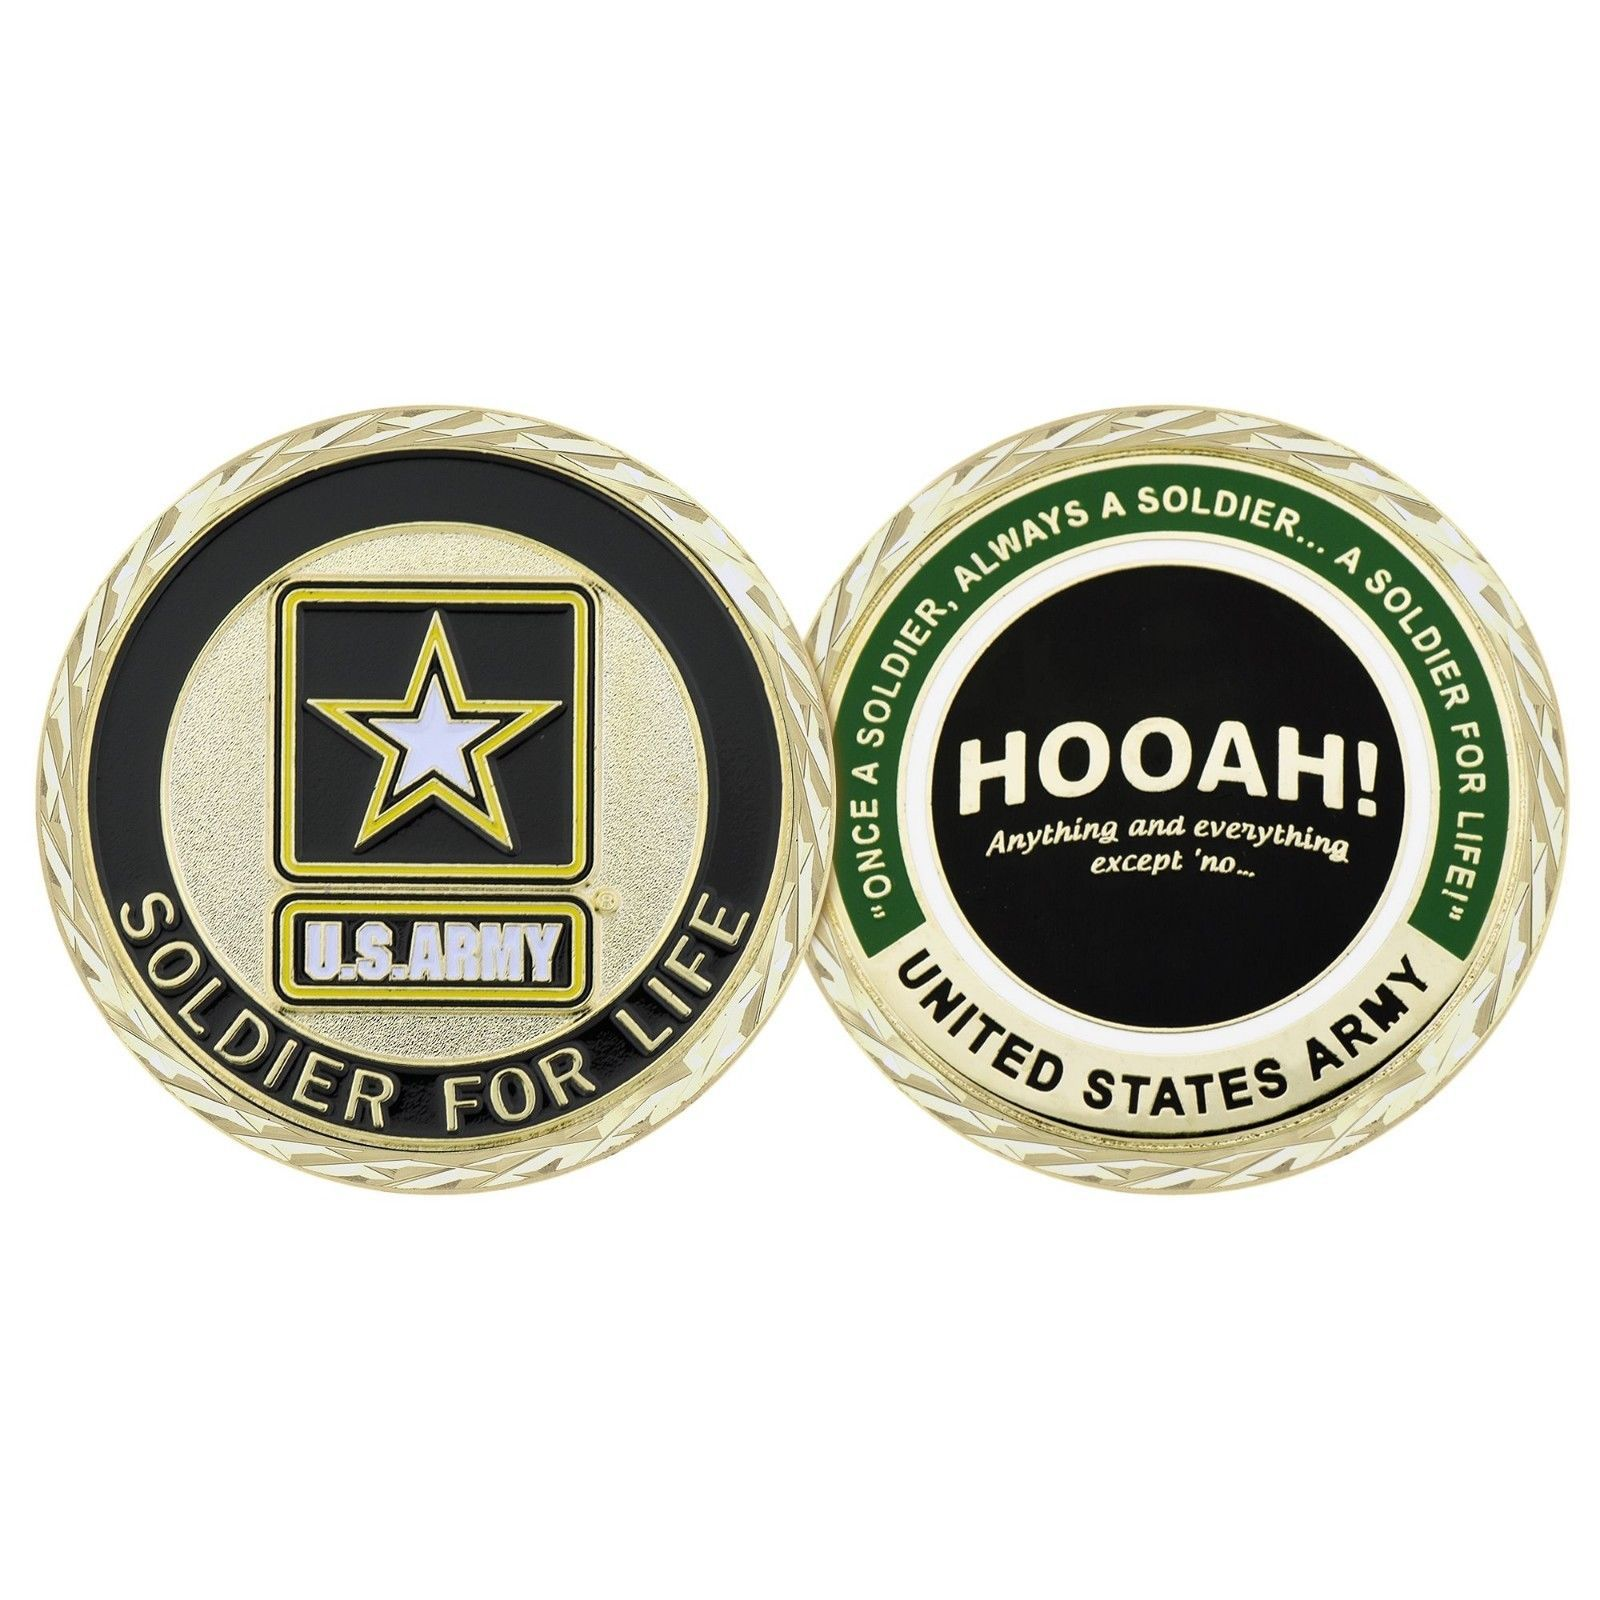 "ARMY SOLDIER FOR LIFE HOOAH 1.75"" CHALLENGE COIN"